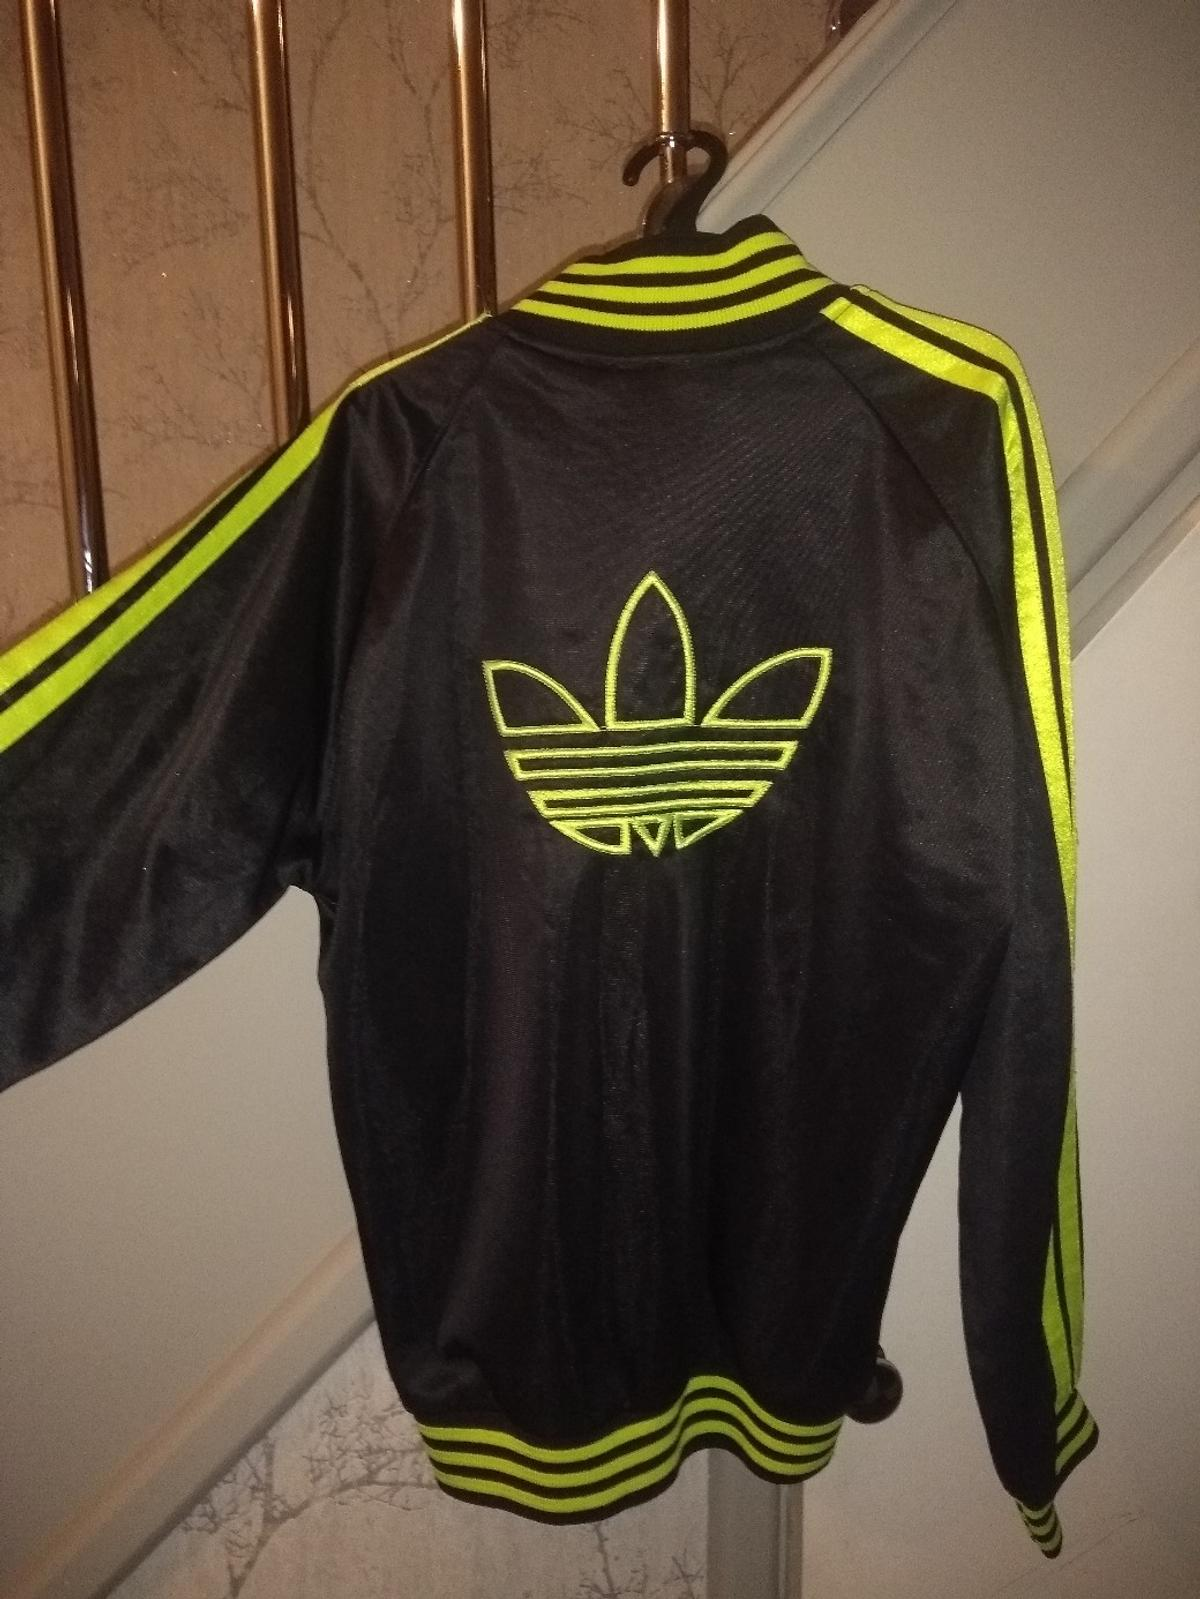 2f163628 Black/neon yellow Adidas track jacket in BB1 Hyndburn for £5.00 for ...